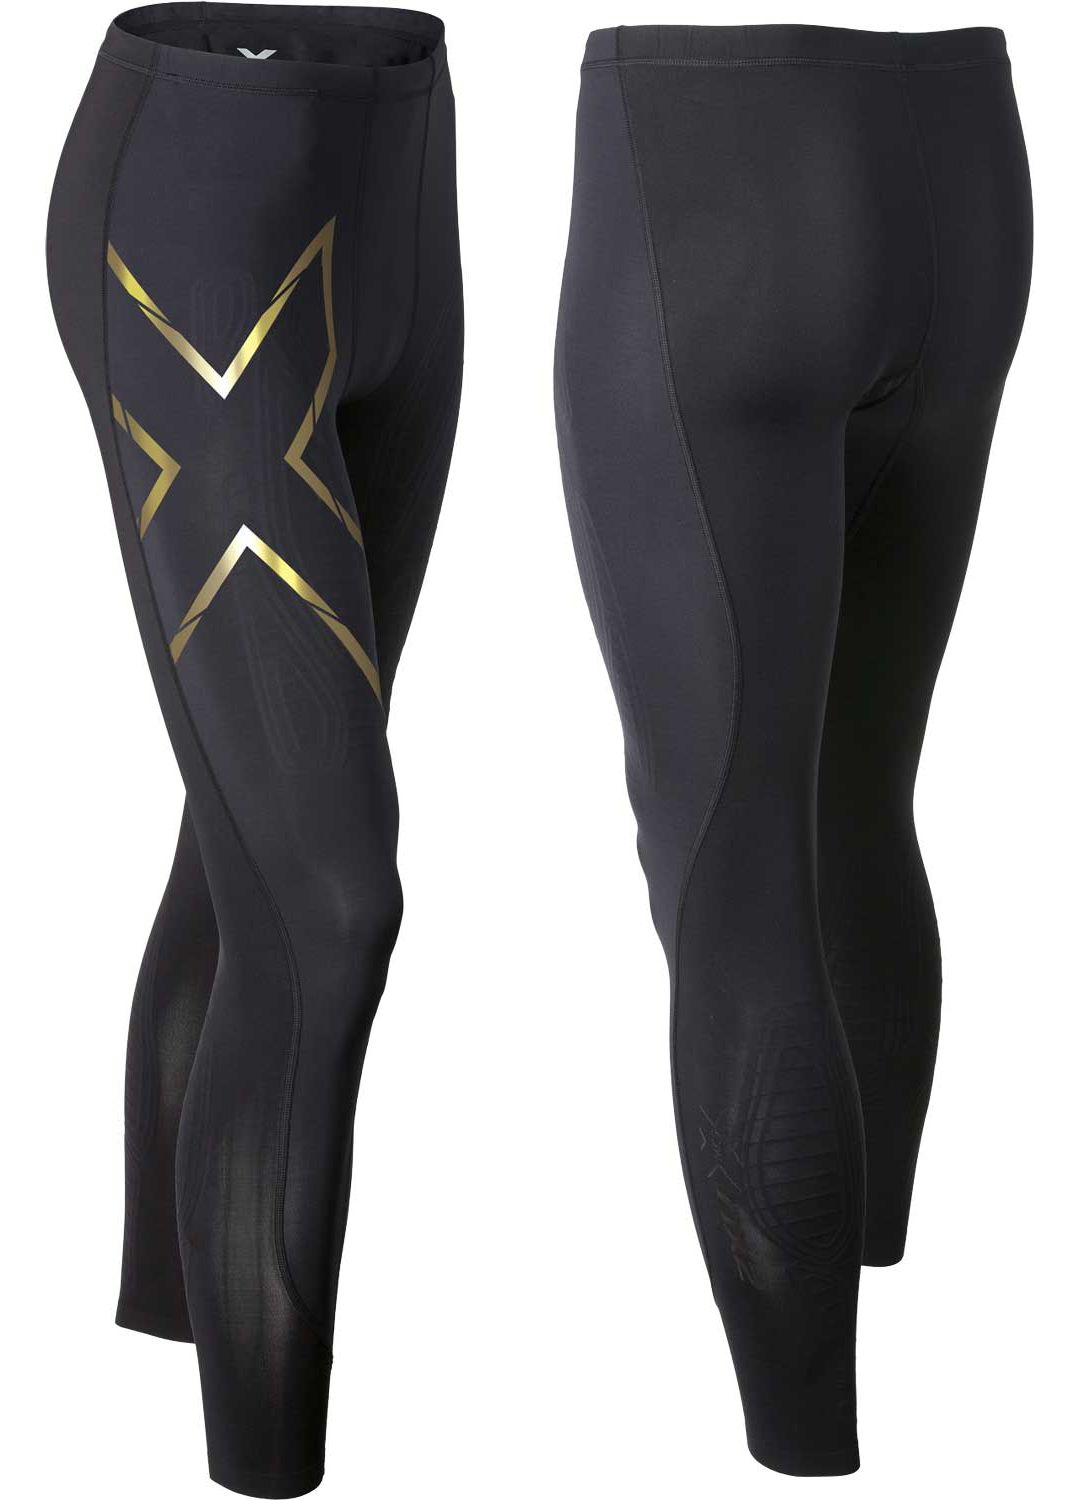 83295b65e2ac1 2XU Men's Elite MCS Compression Tights | DICK'S Sporting Goods